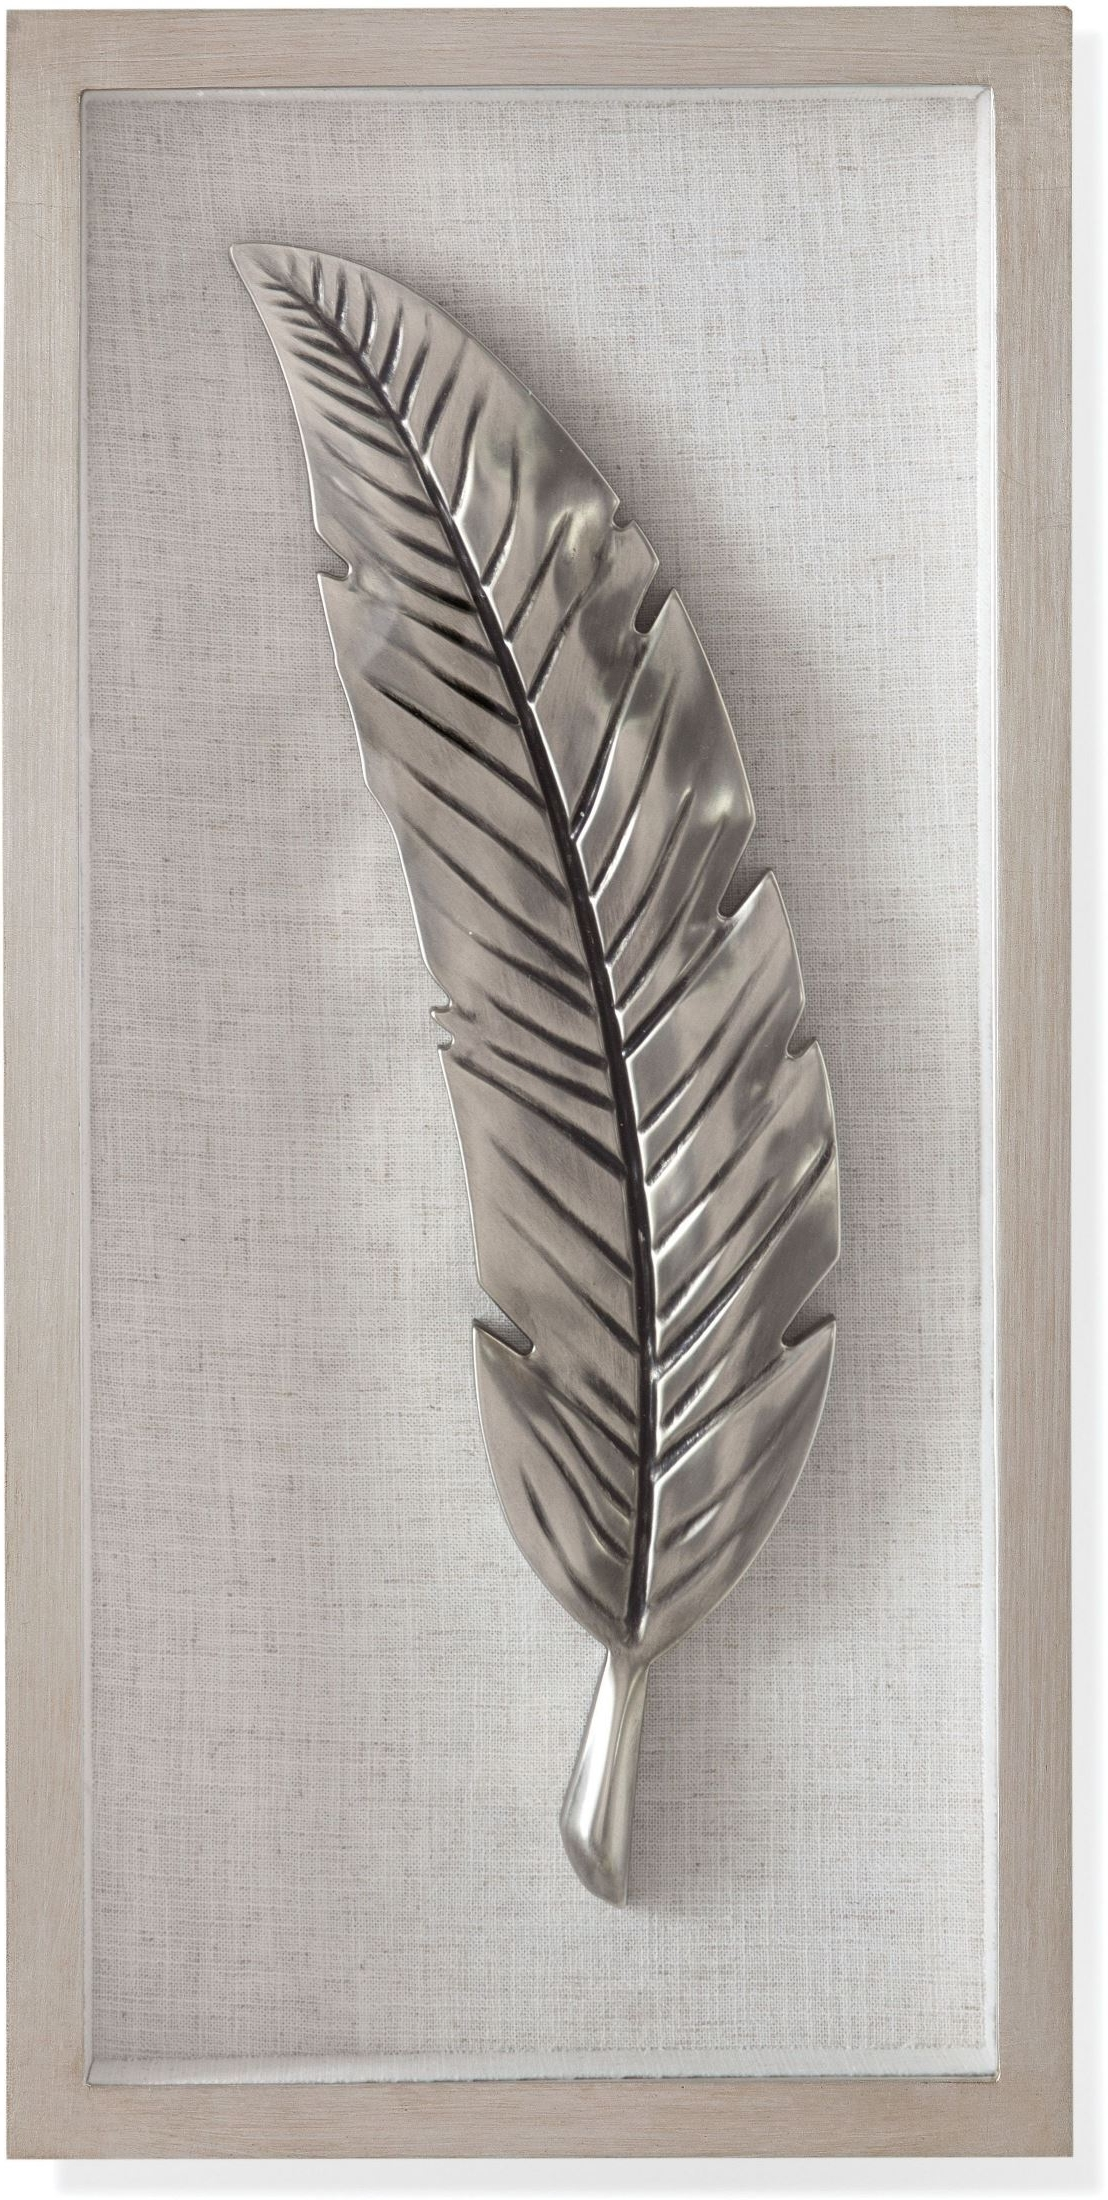 Well Known Bassett Mirror Company Silver And Black Feather Wall Art In Feather Wall Art (View 20 of 20)